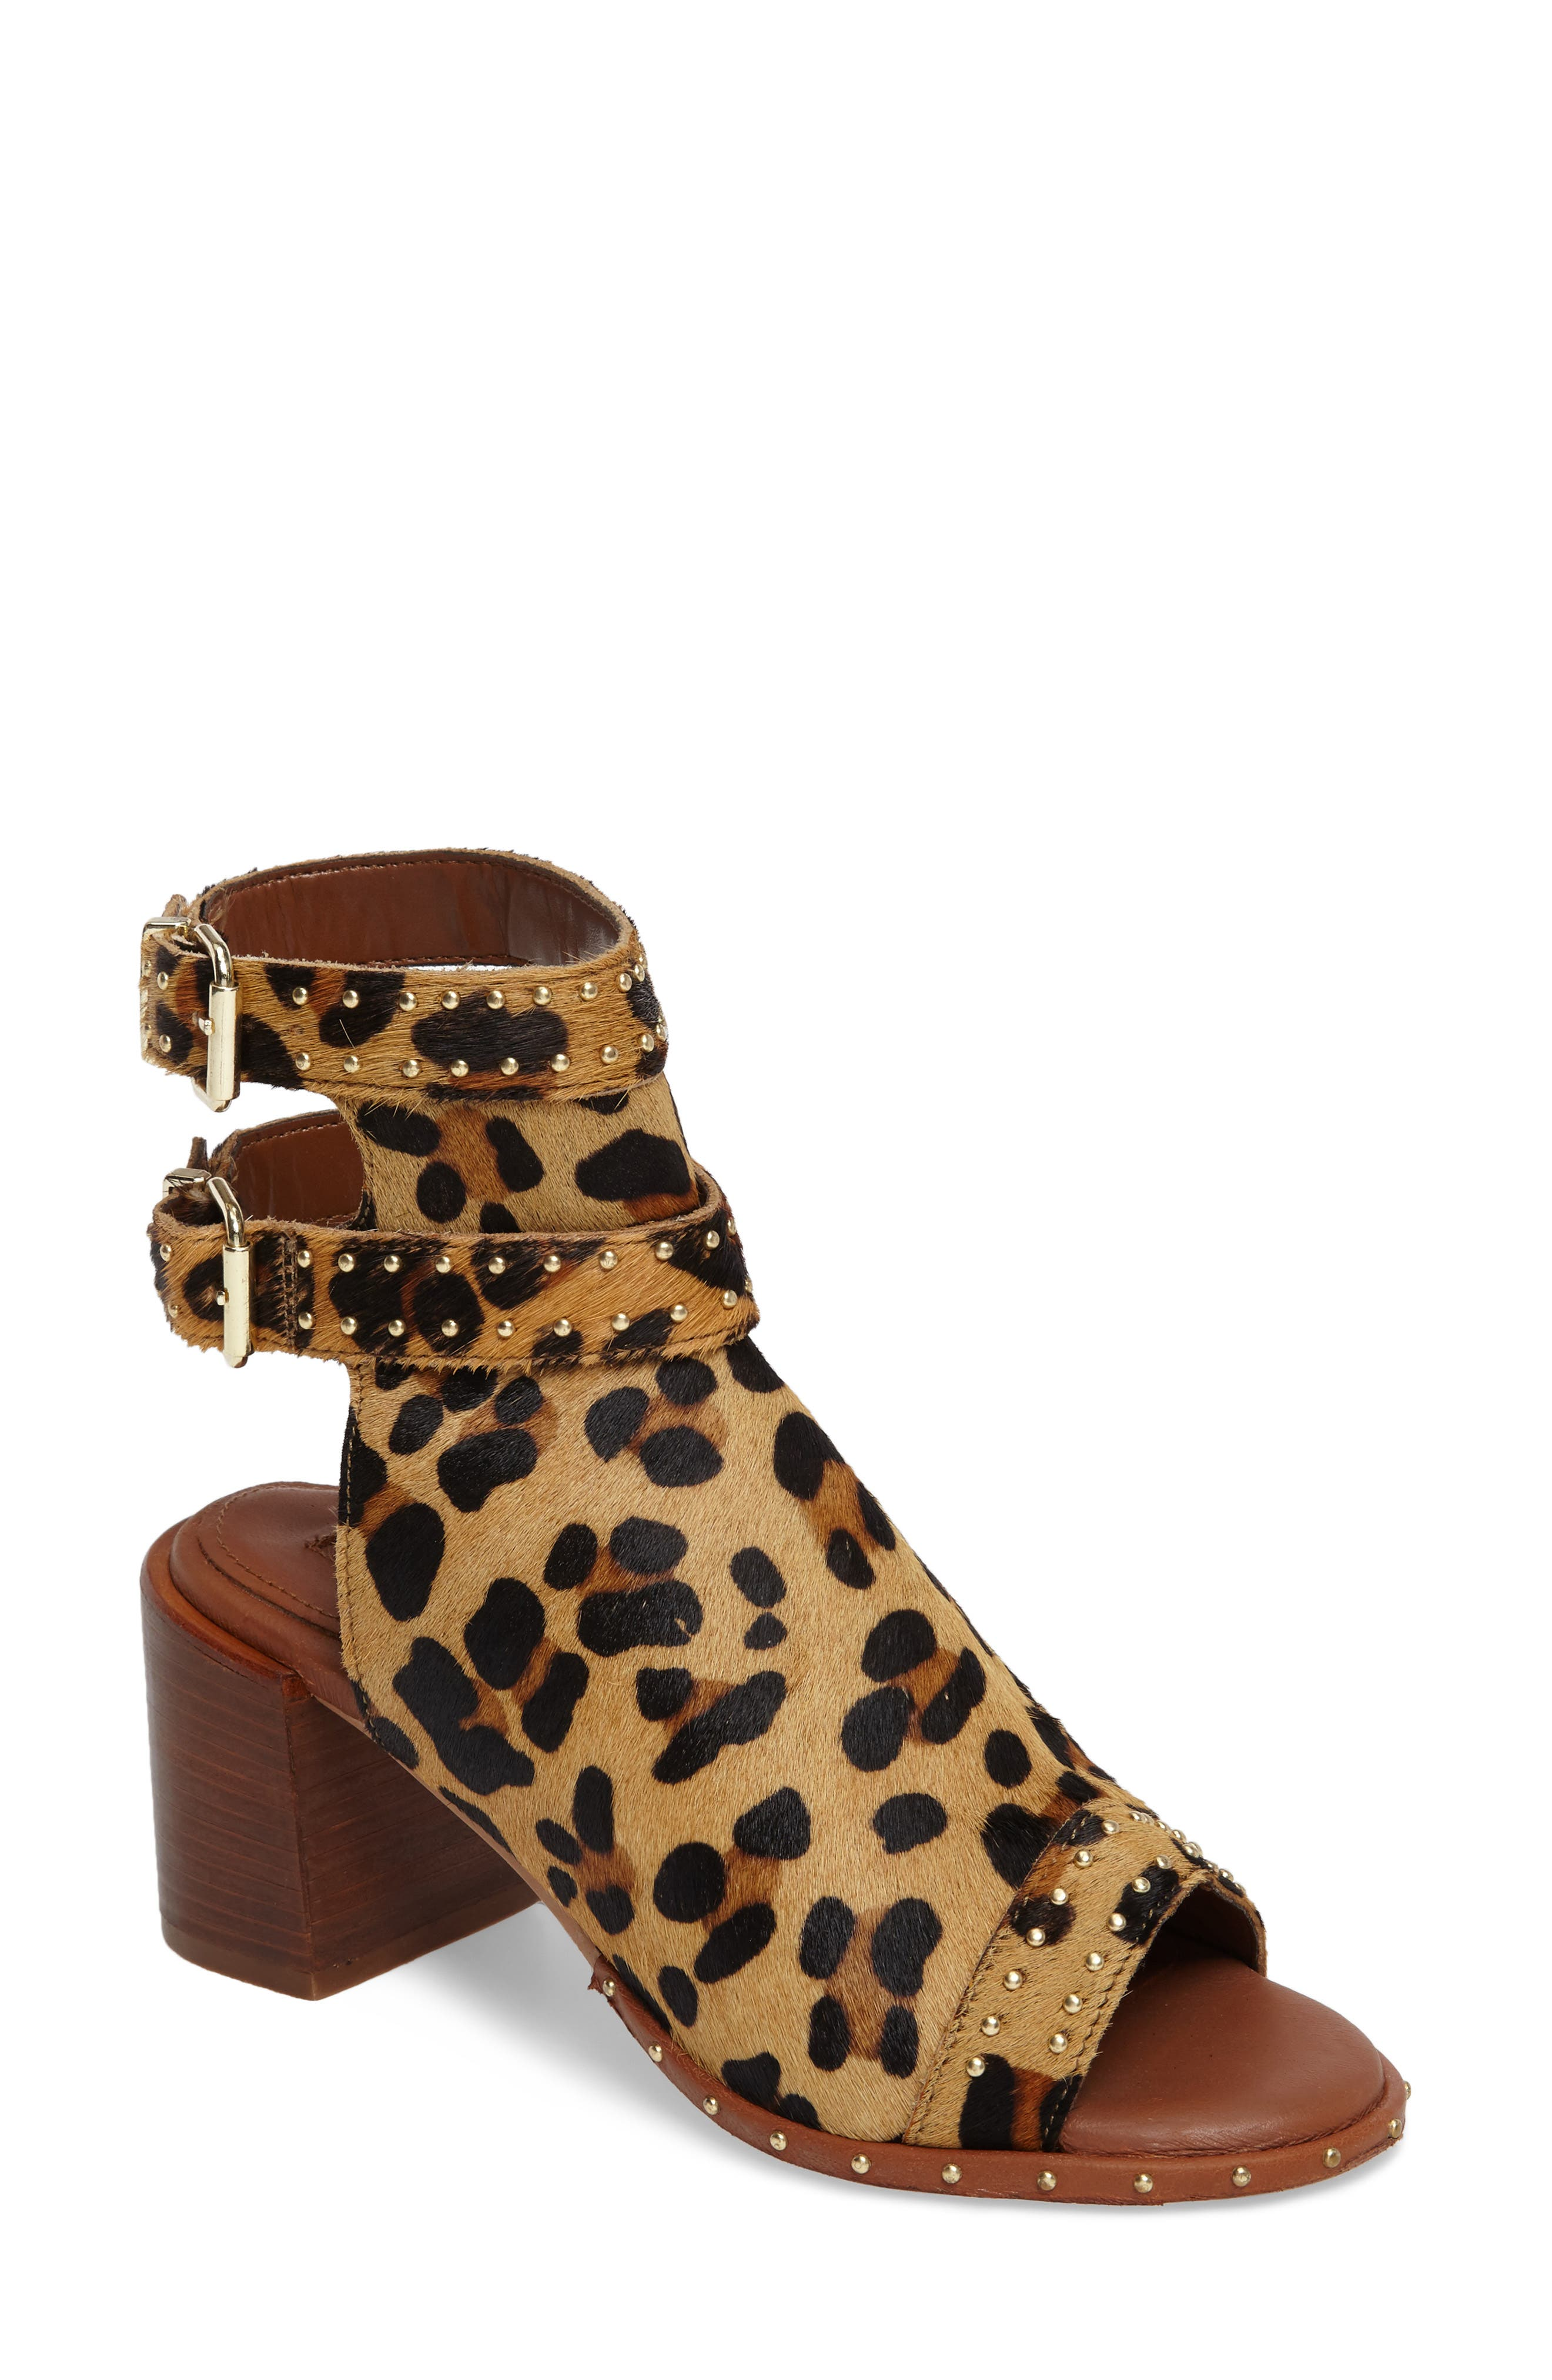 North Studded Bootie Sandal,                             Main thumbnail 1, color,                             Leopard